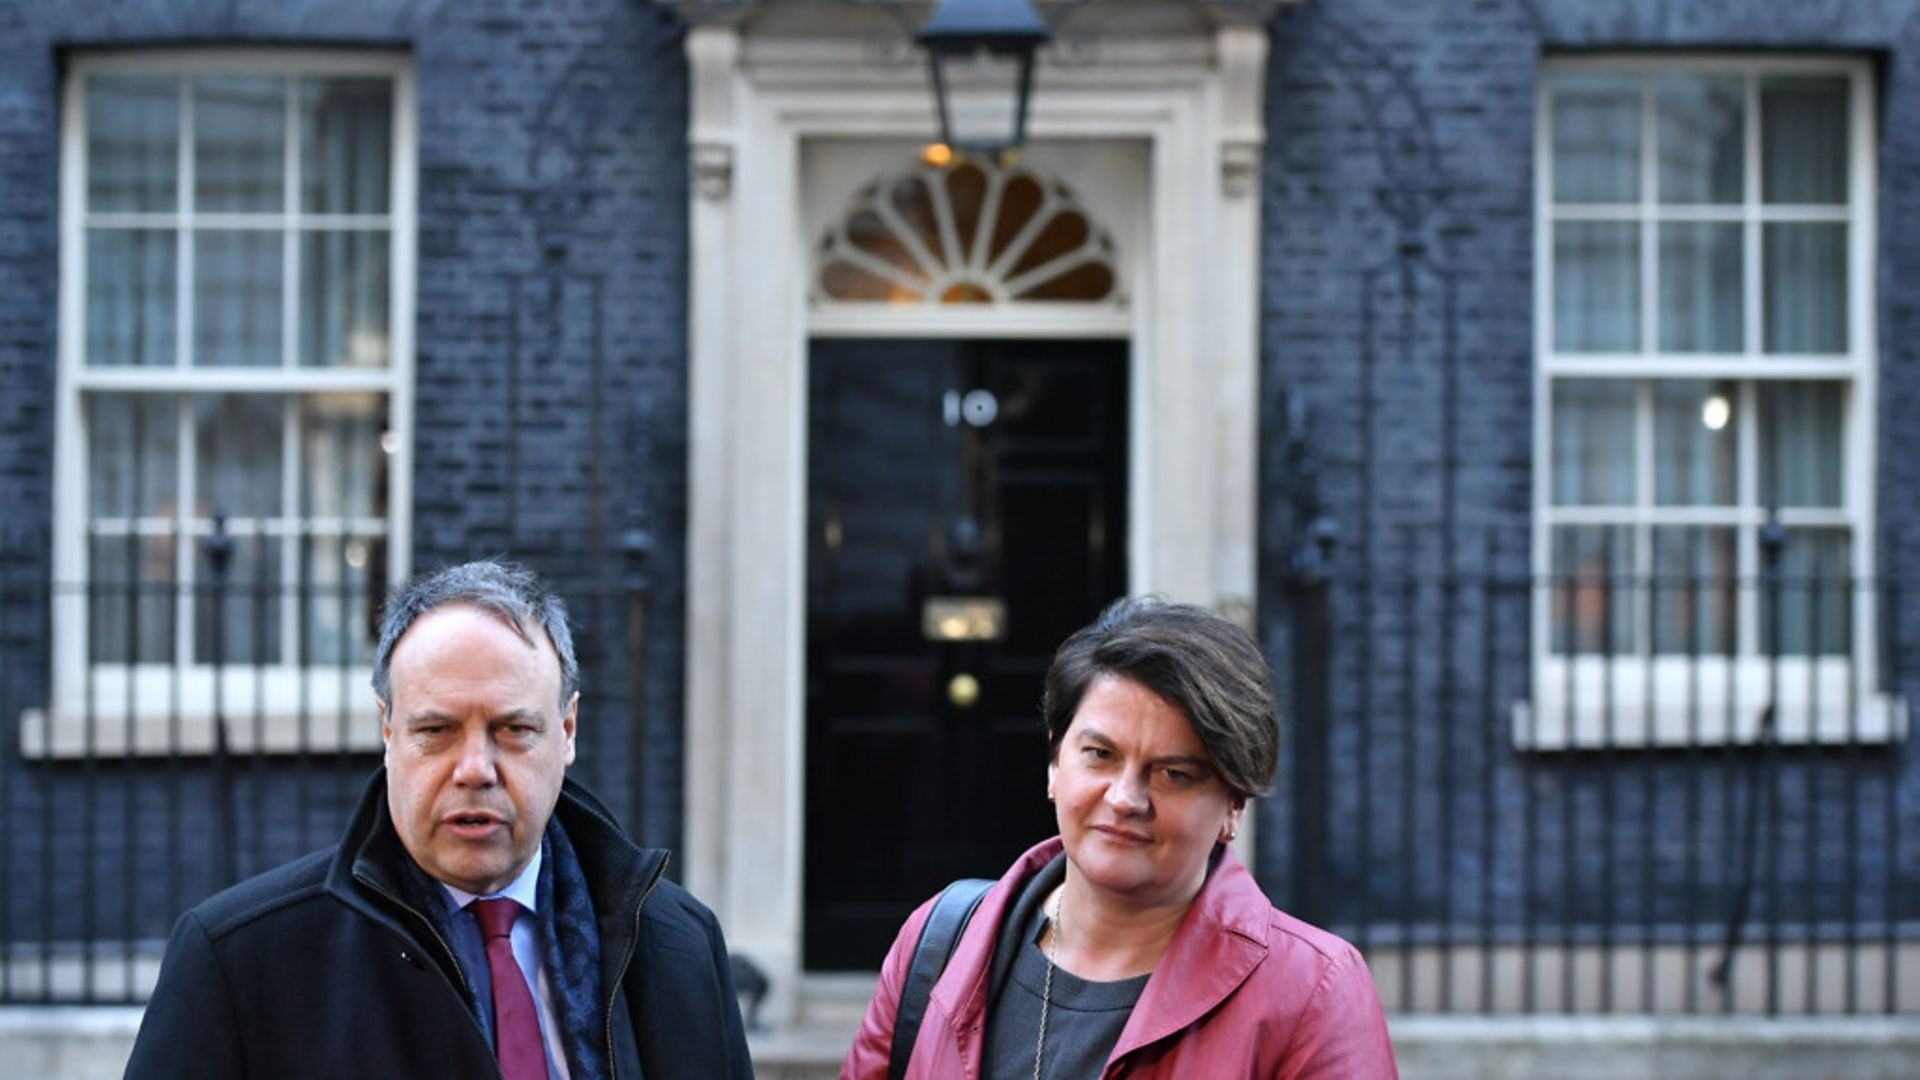 DUP deputy leader Nigel Dodds and leader Arlene Foster in Downing Street - Credit: PA Wire/PA Images